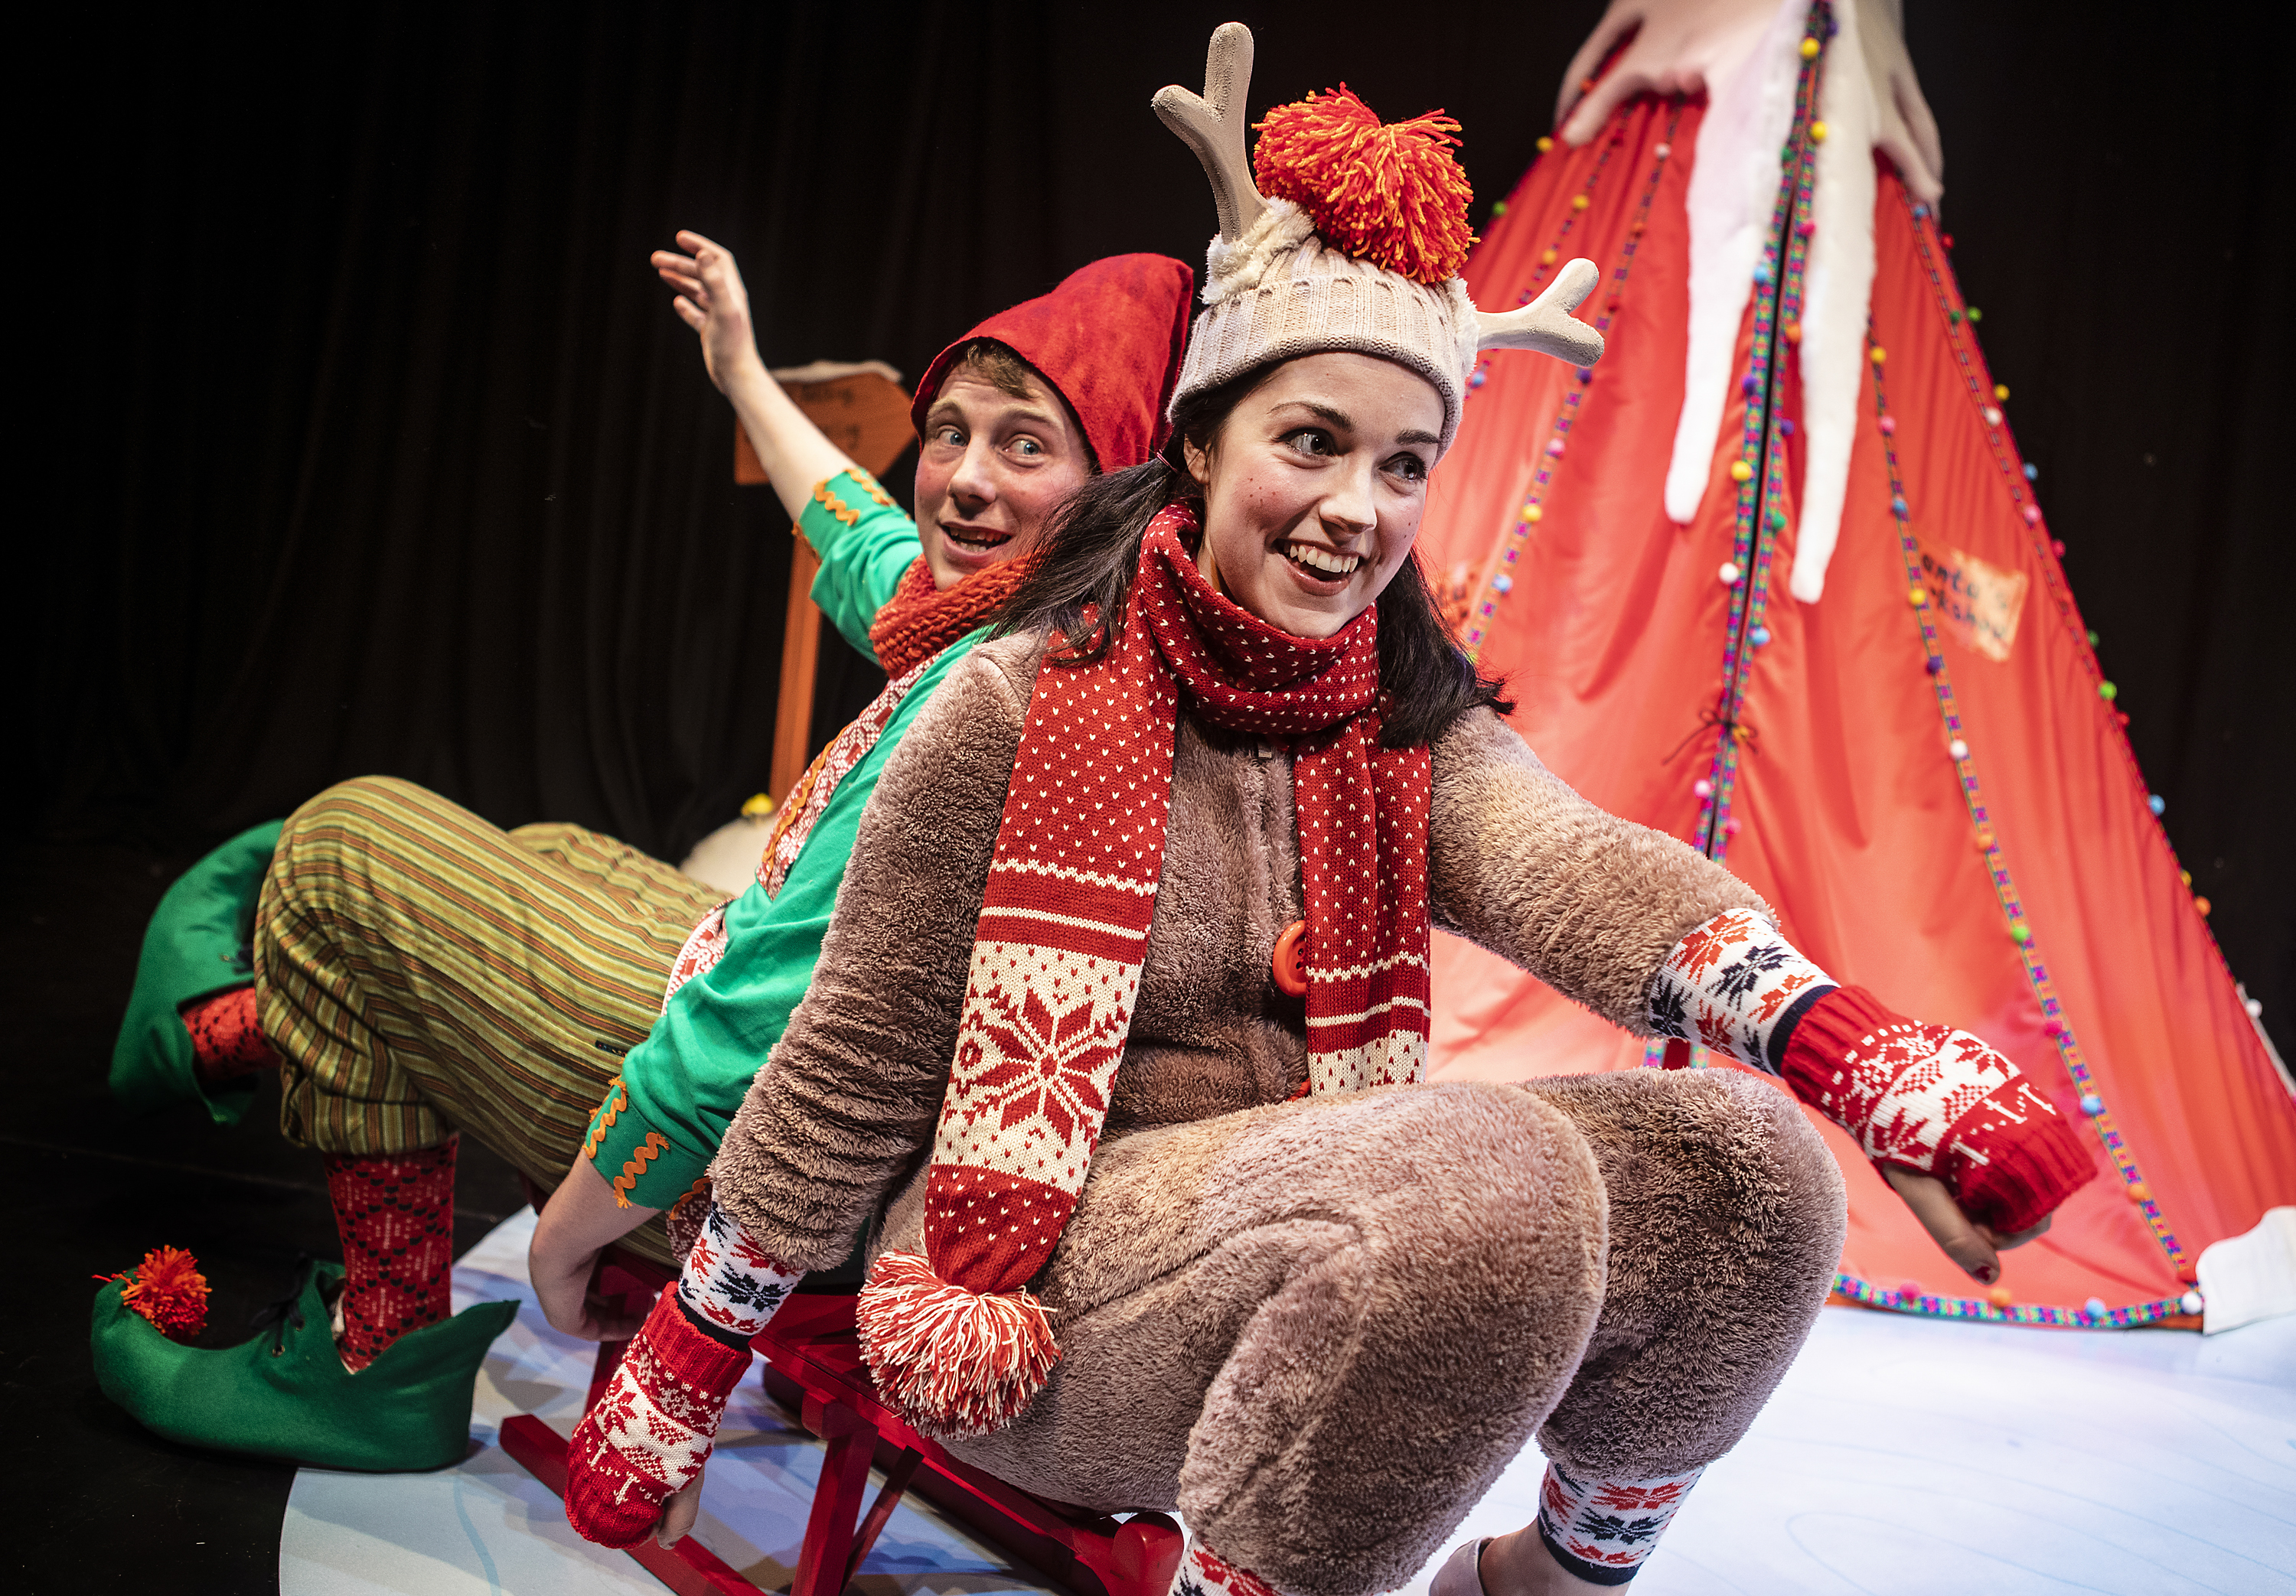 010_Elf and Reindeer's Christmas Cracker_Pamela Raith Photography